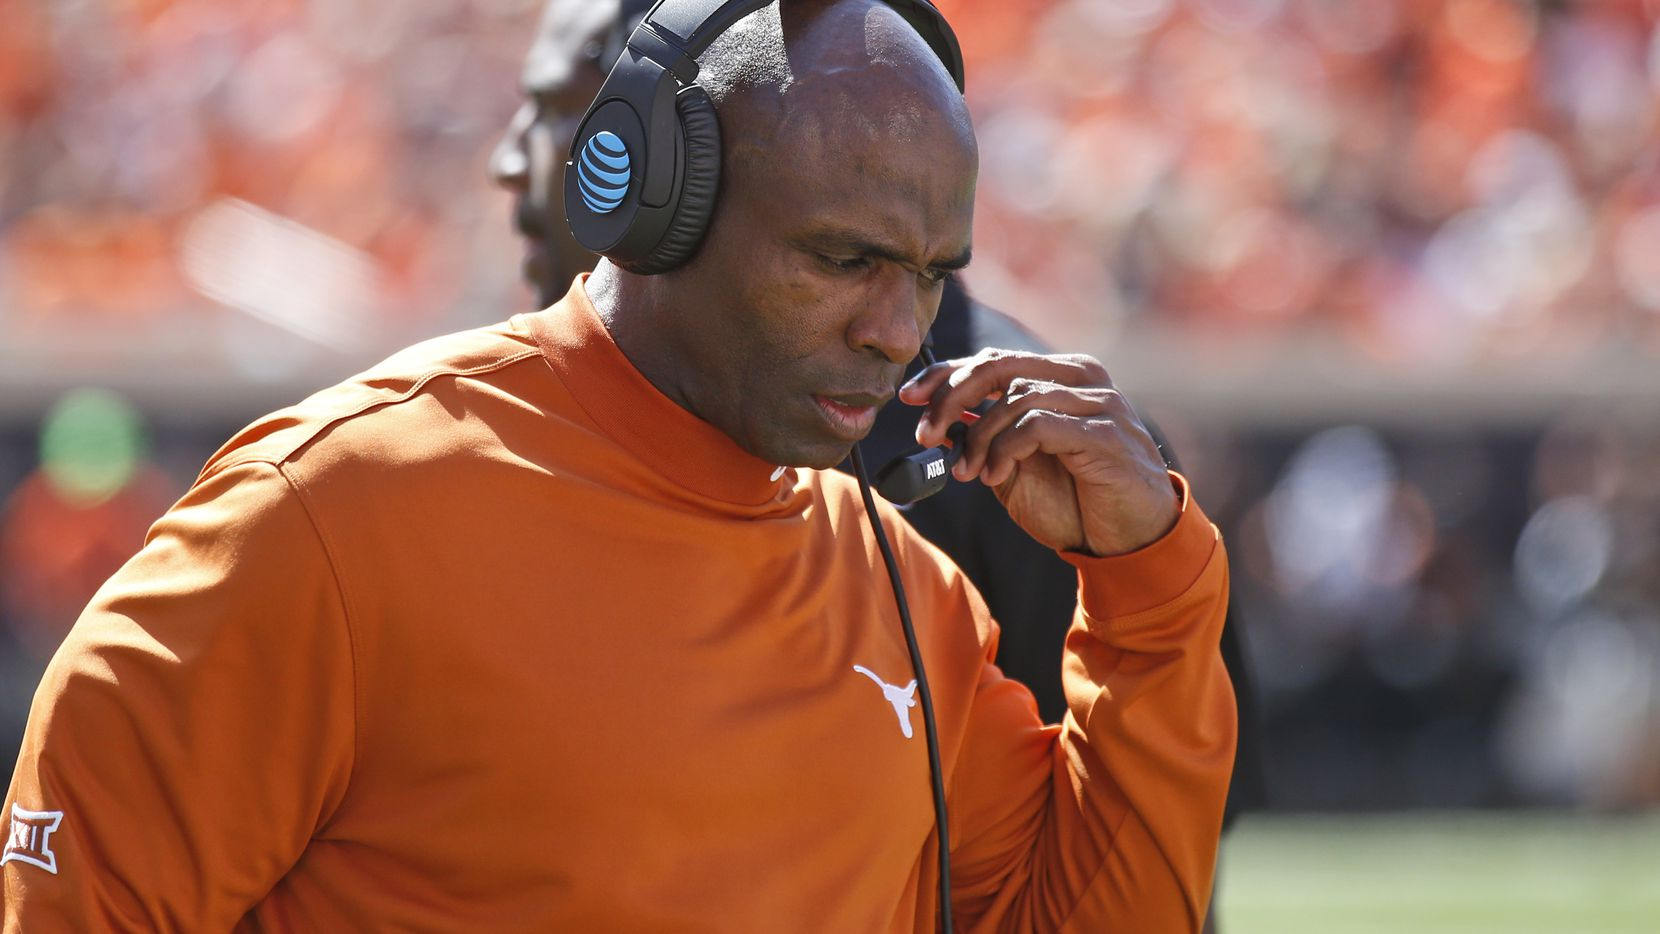 Texas head coach Charlie Strong walks along the sideline during an NCAA college football game against Oklahoma State in Stillwater, Okla., Saturday, Oct. 1, 2016. Oklahoma State won 49-31.